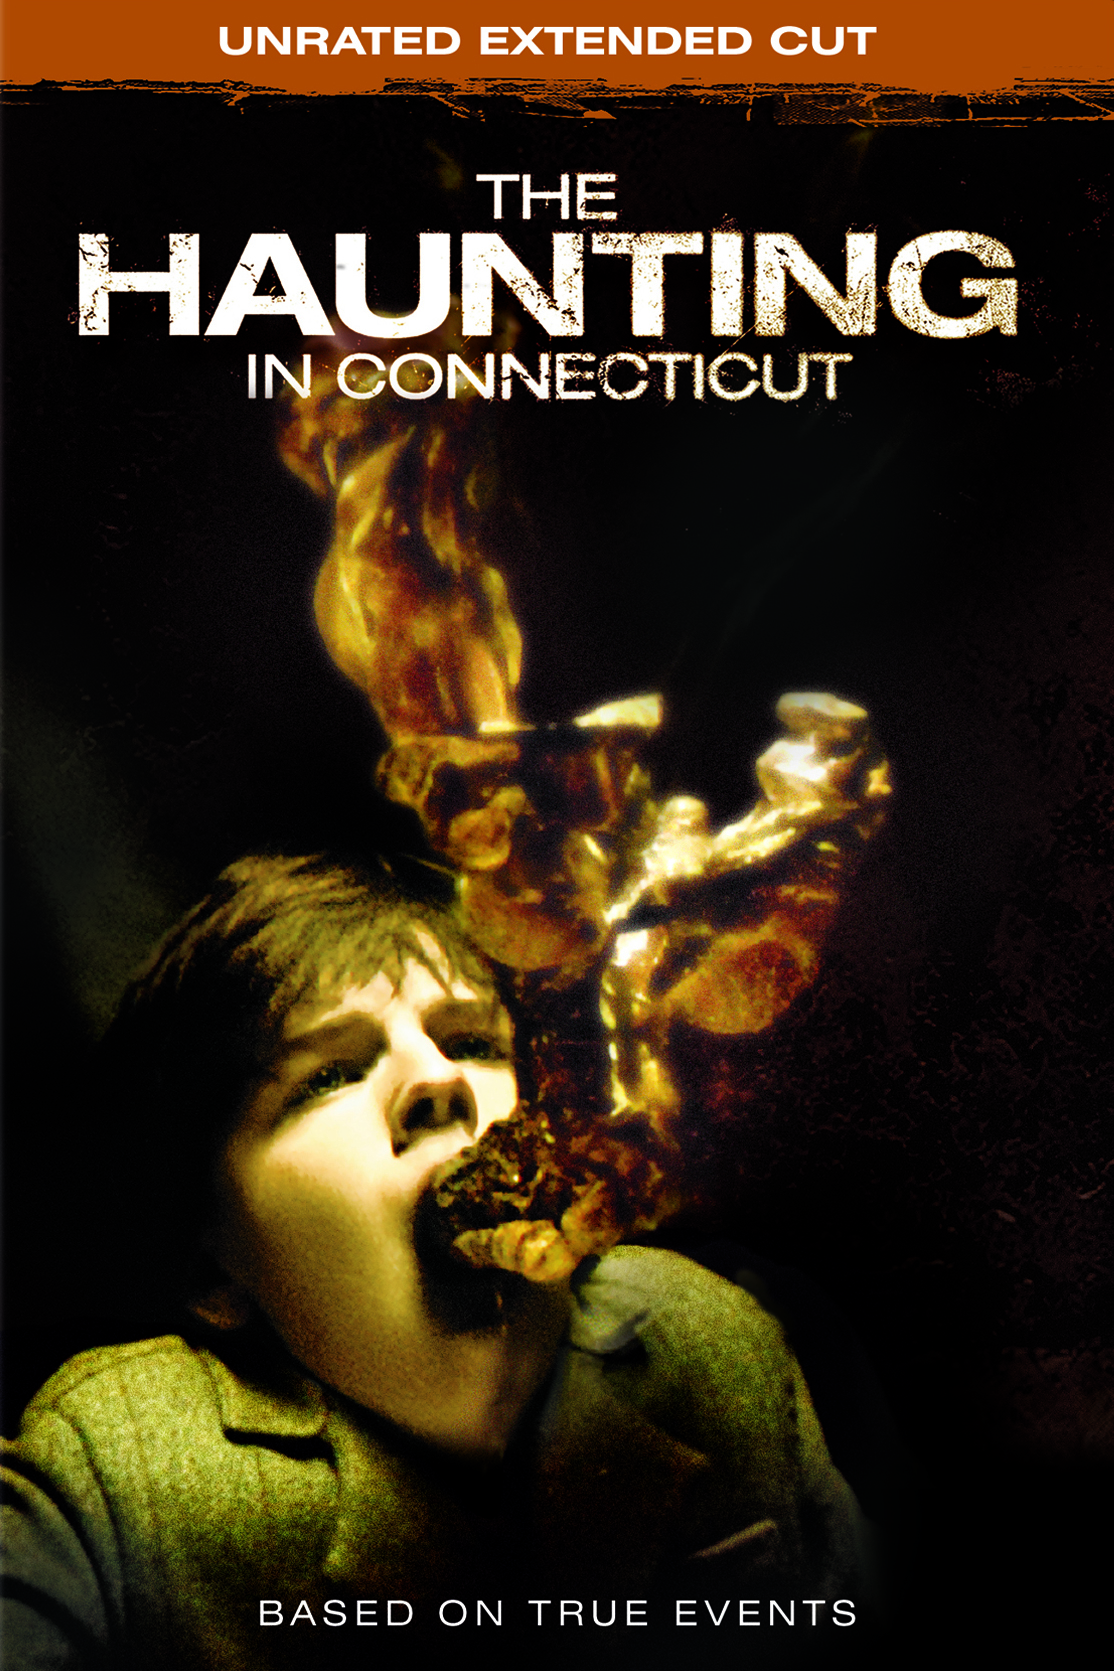 The Haunting in Connecticut: Unrated Extended Cut